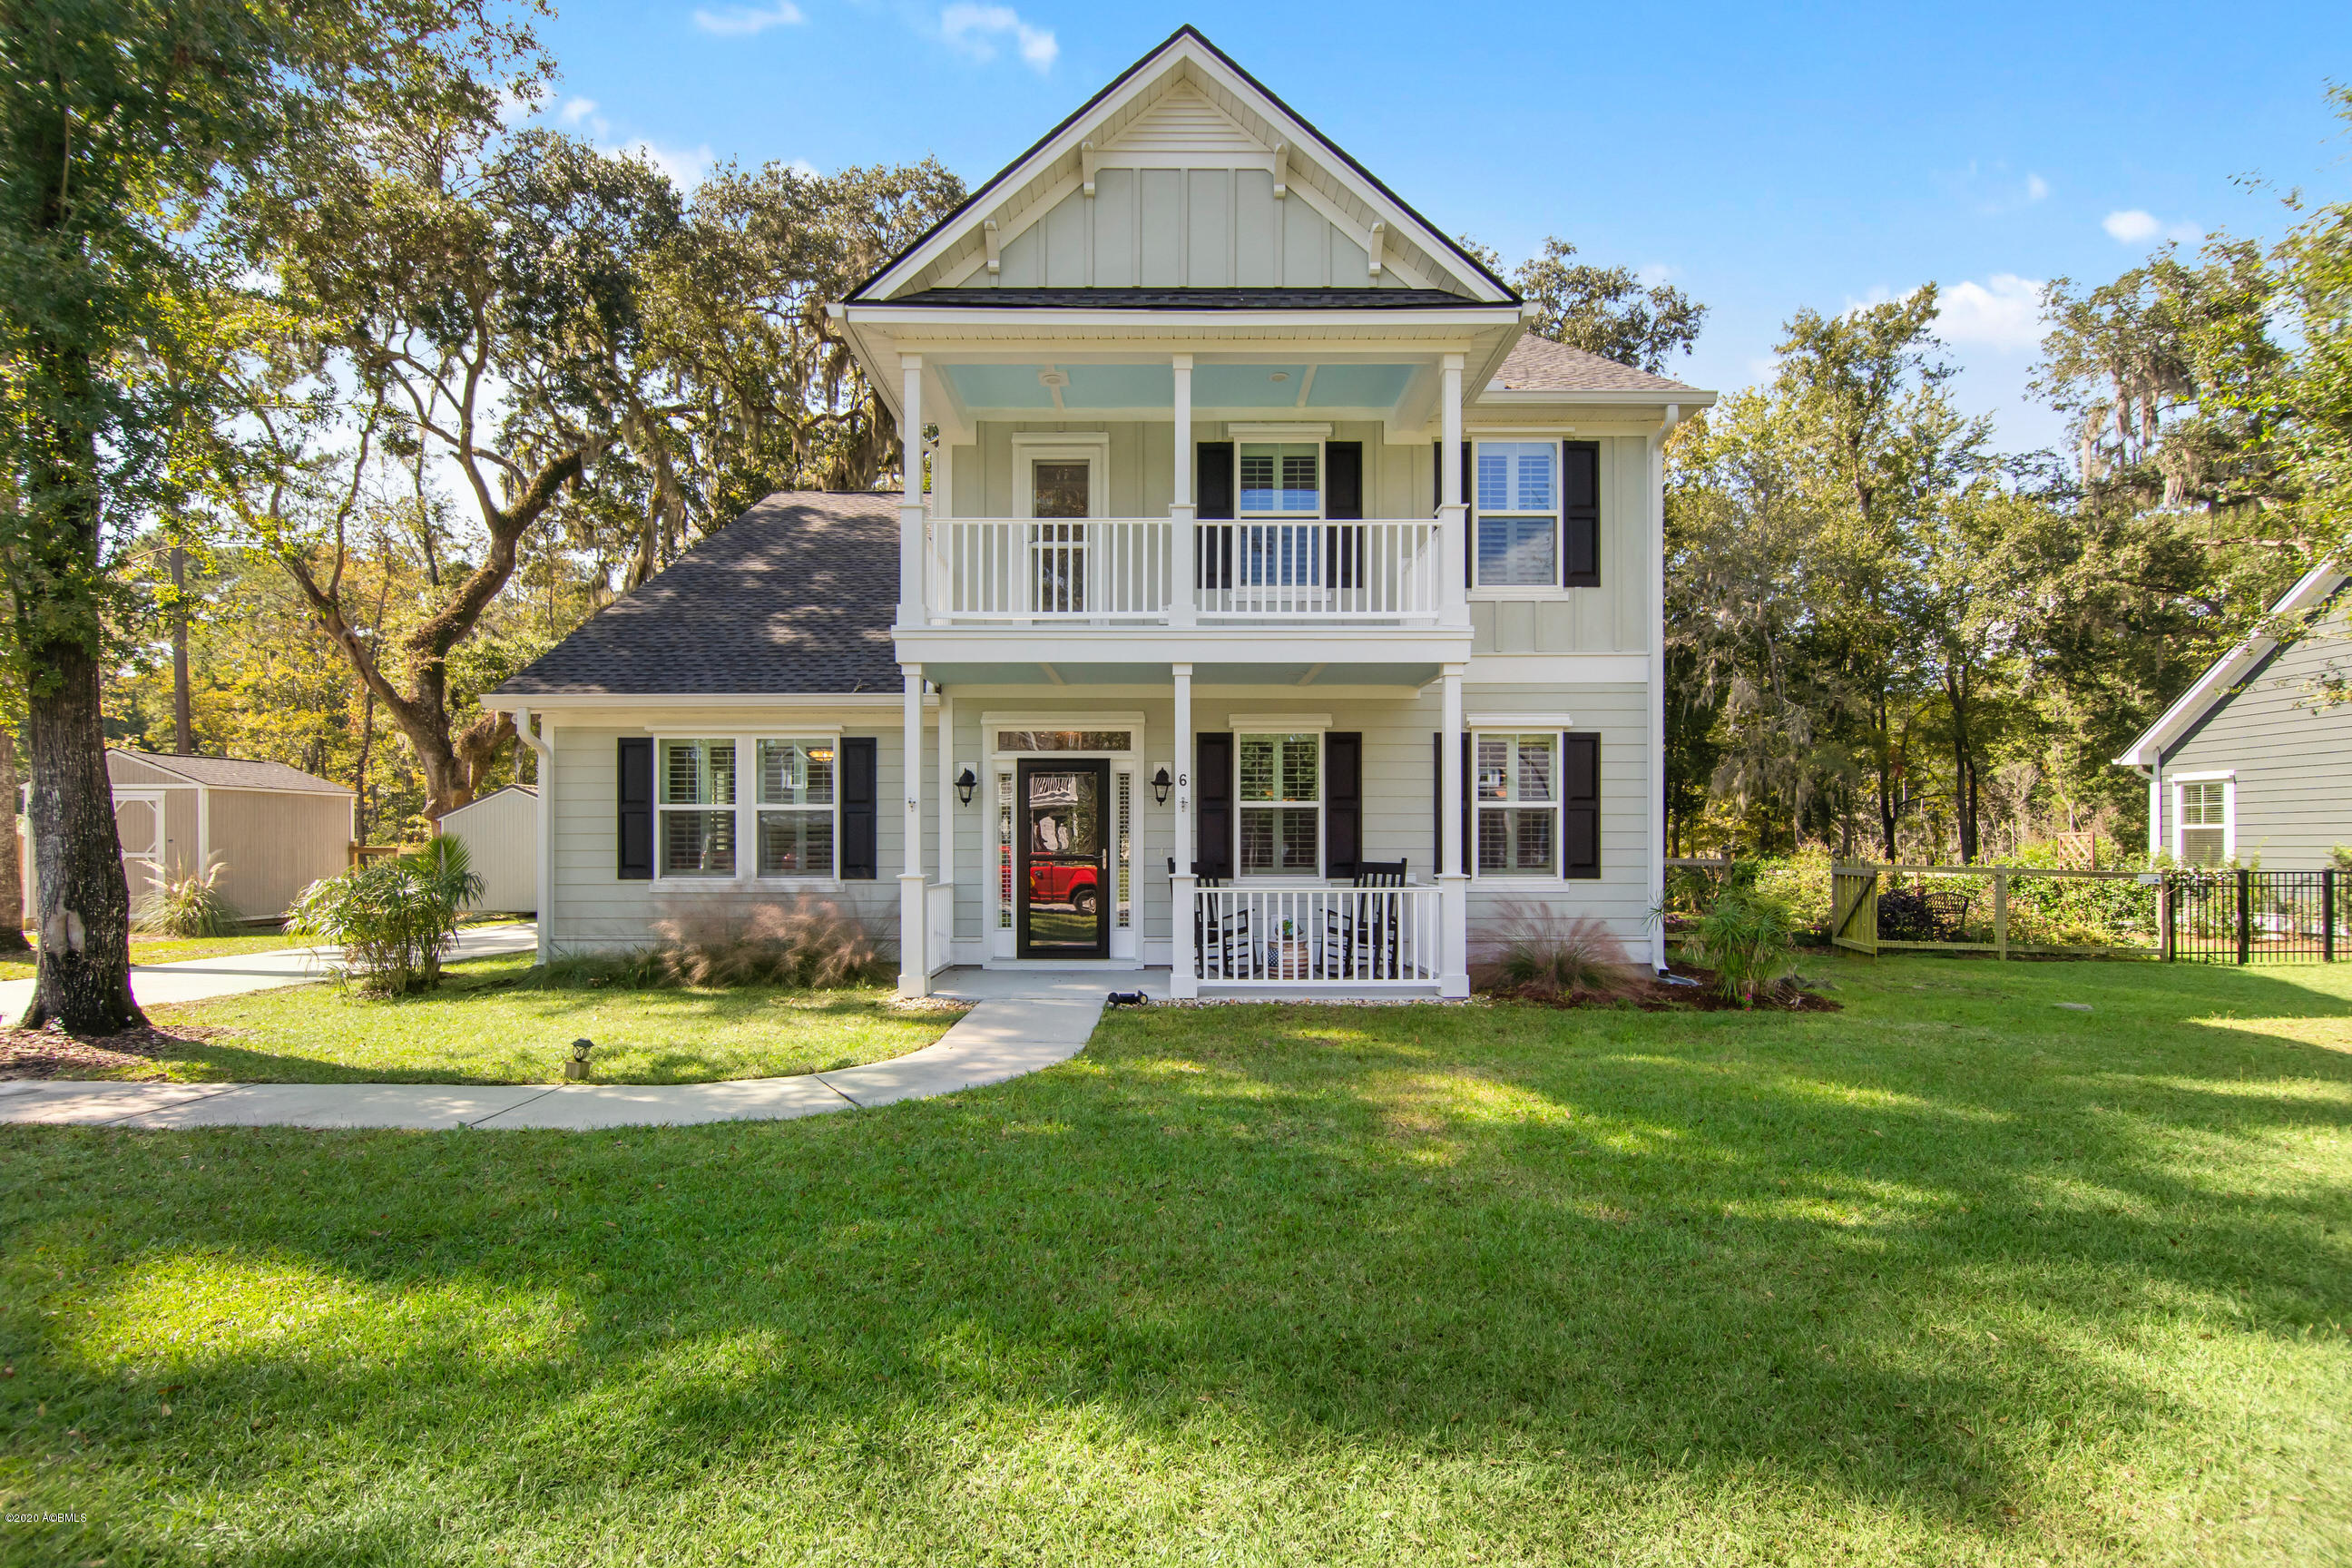 Photo of 6 Sandpiper Drive, Beaufort, SC 29907